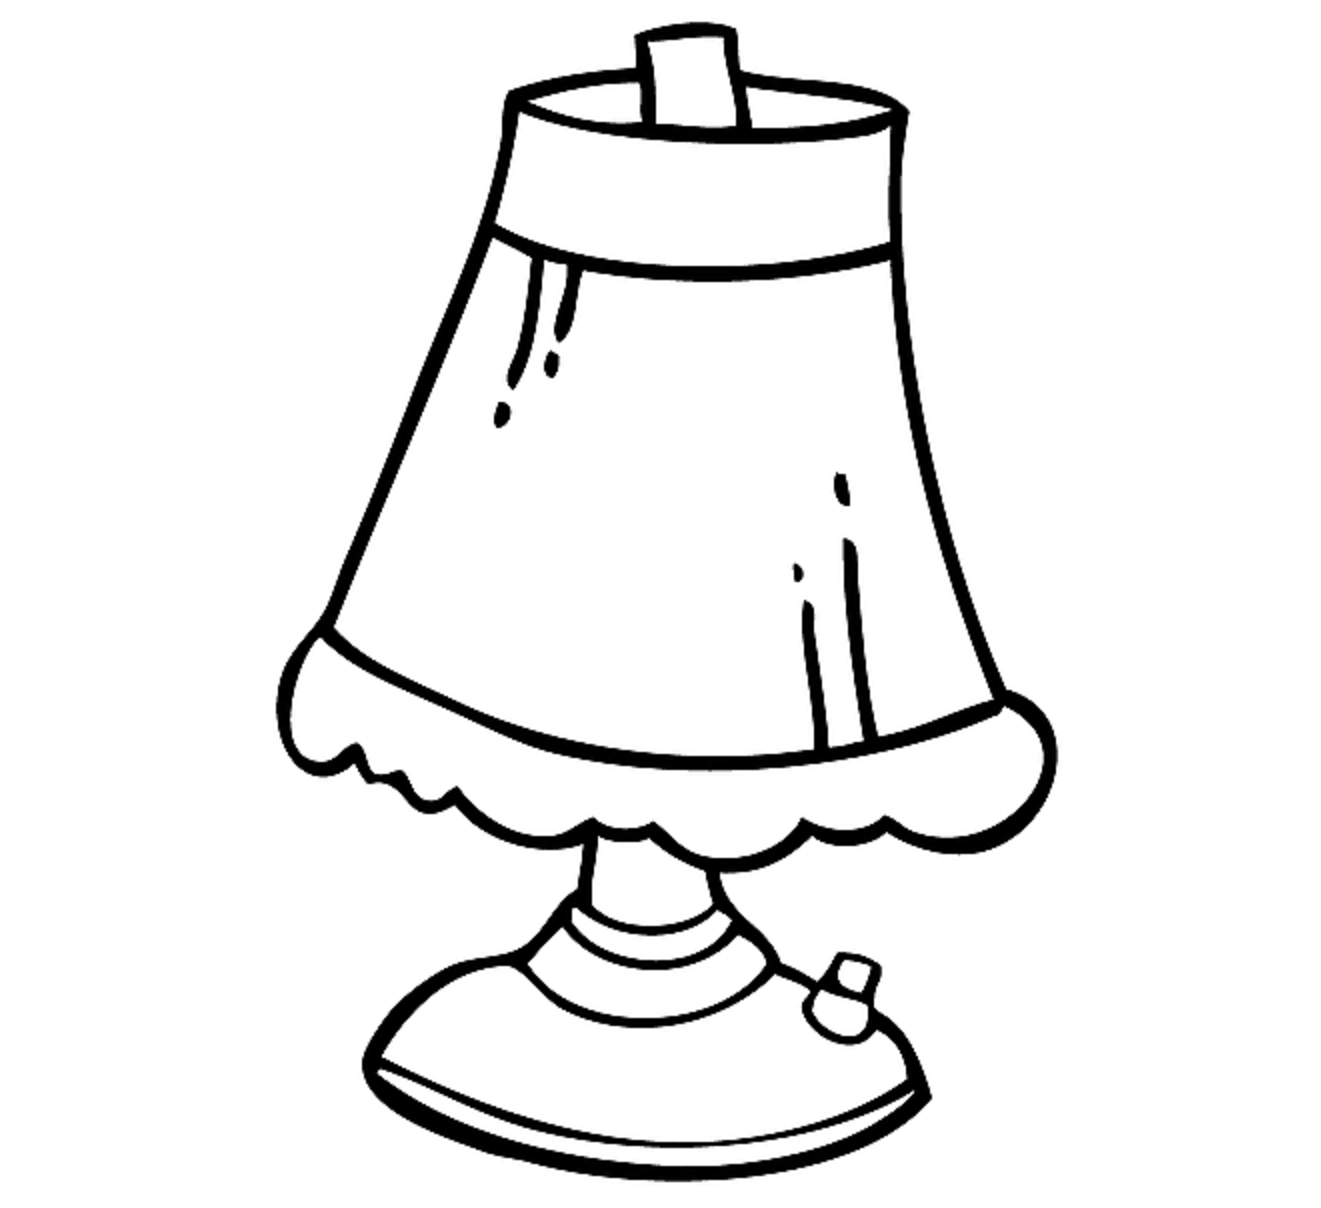 1321x1208 Drawing Of A Lamp Drawing Of A Lamp Lighting And Ceiling Fans